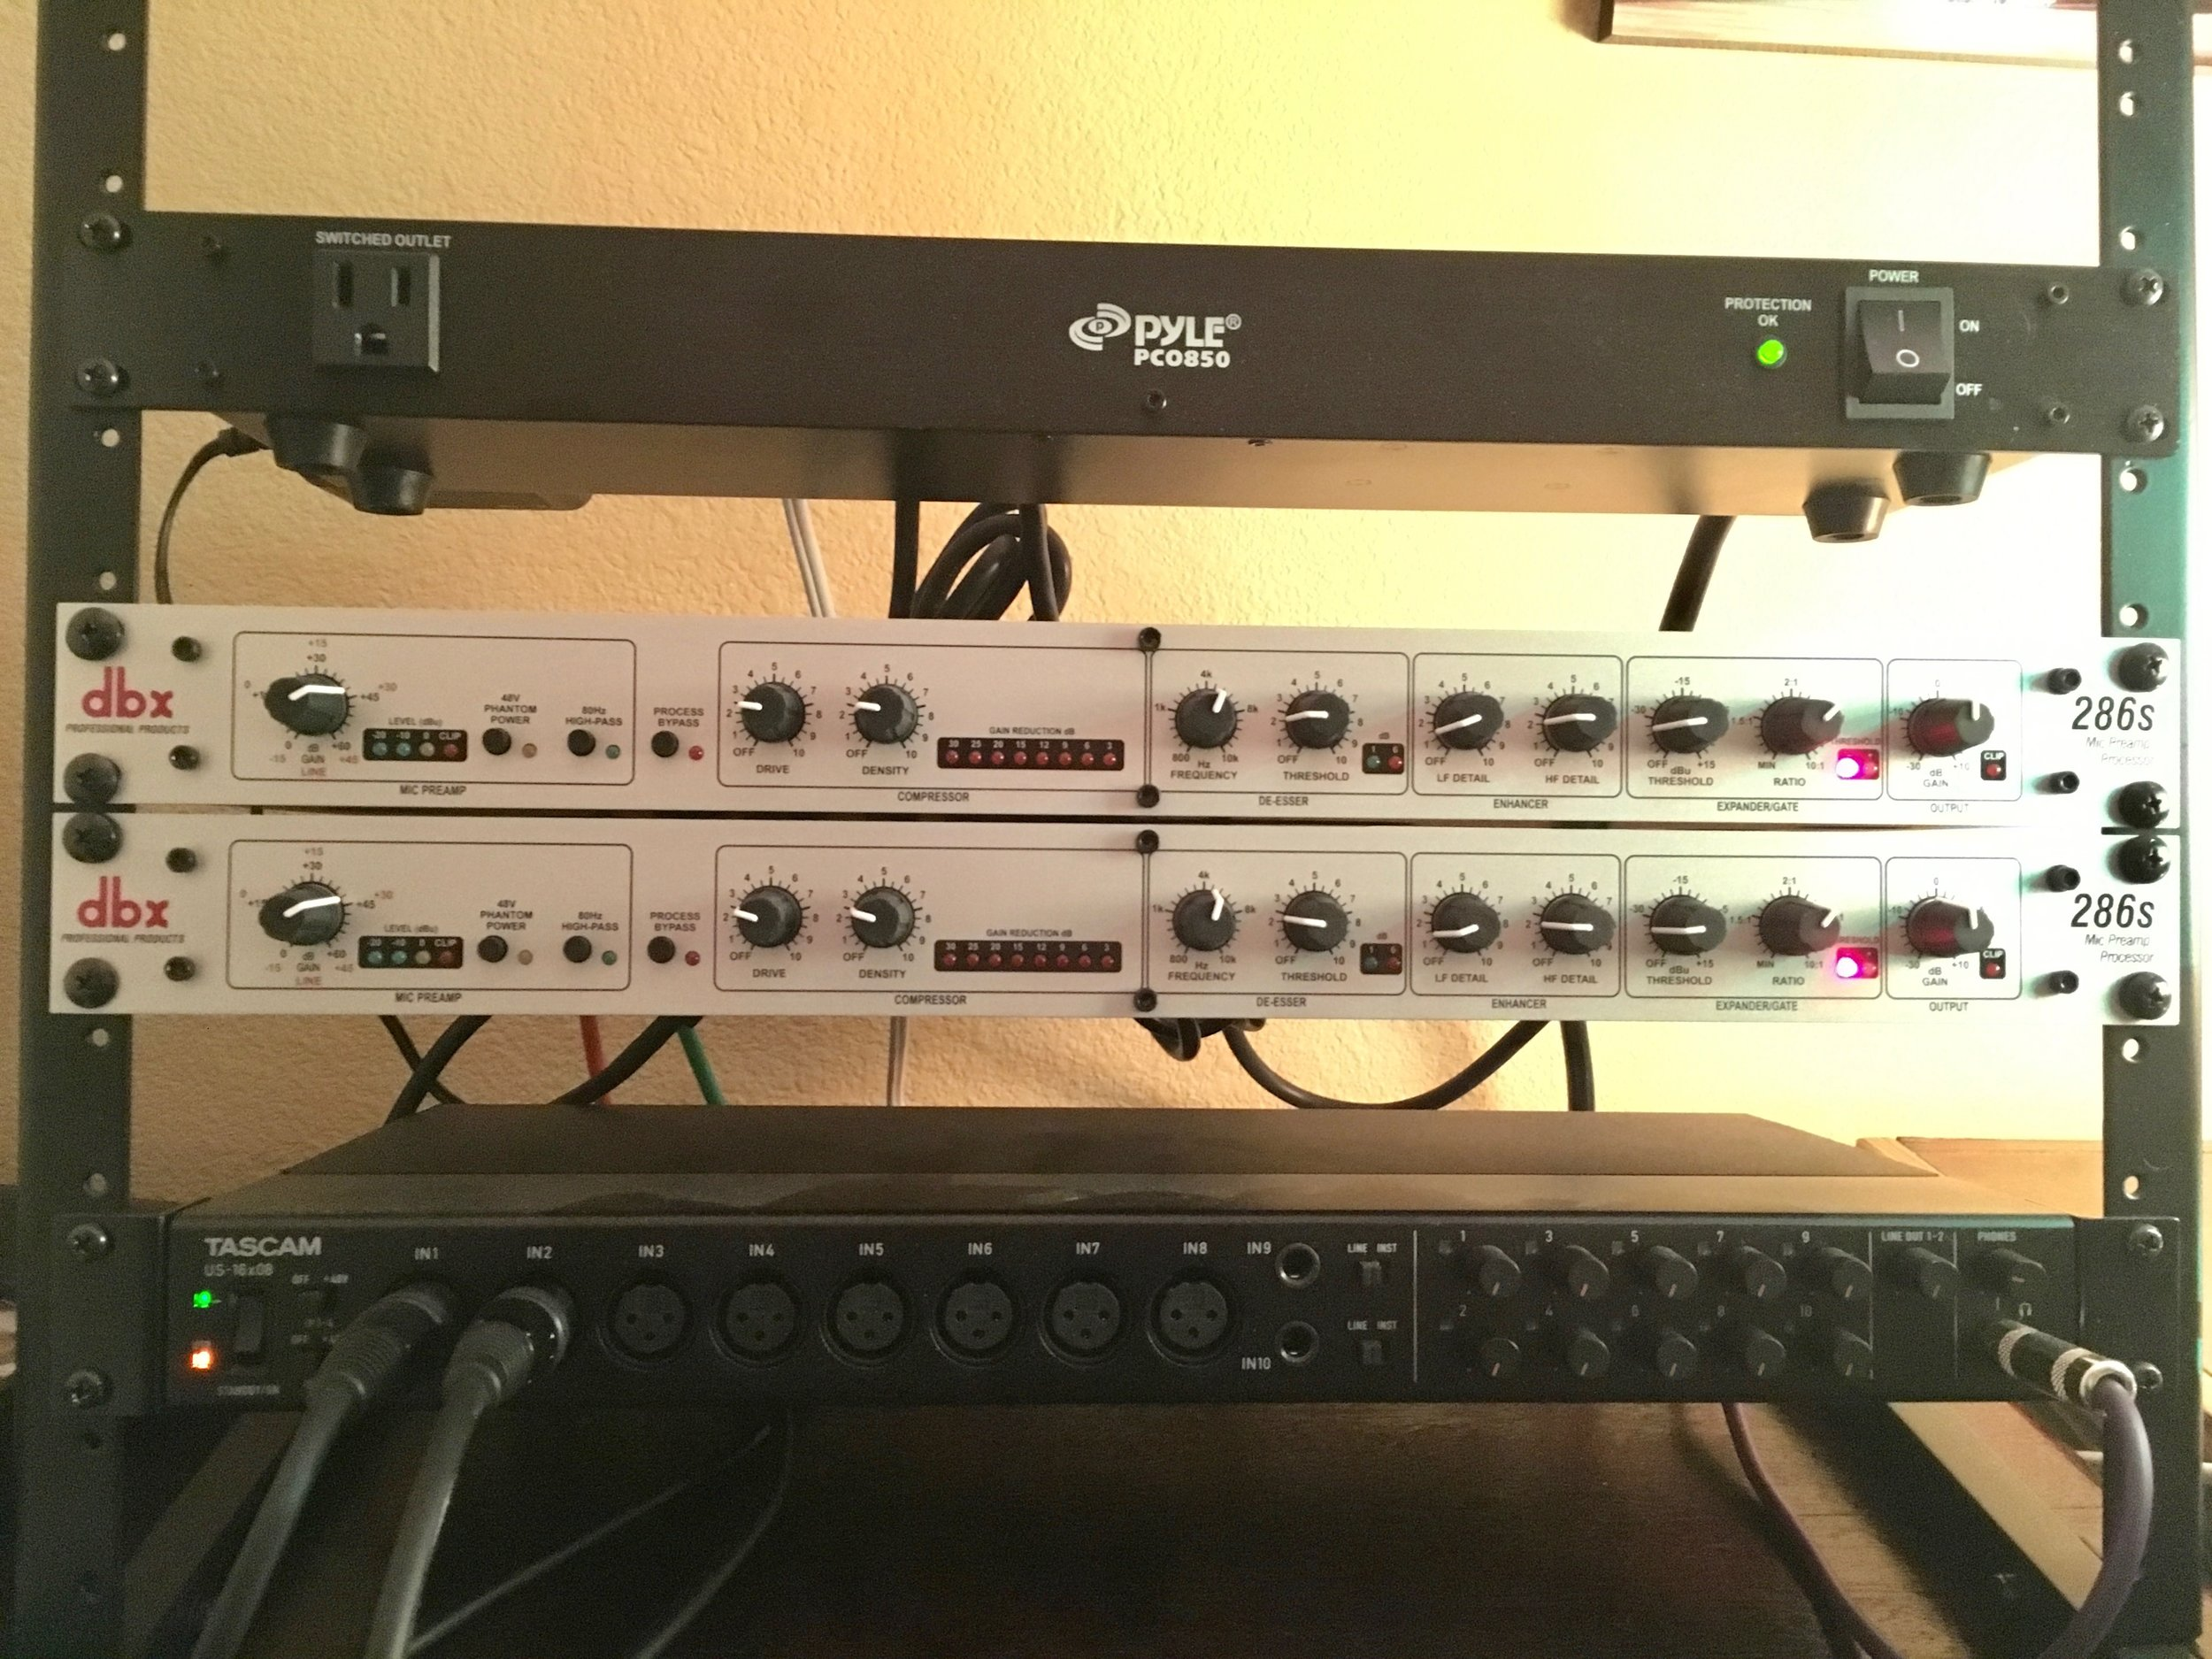 From top to bottom: the Pyle surge protector, two DBX 286s Mic Preamps, and a Tascam US-16x08 USB Audio Interface